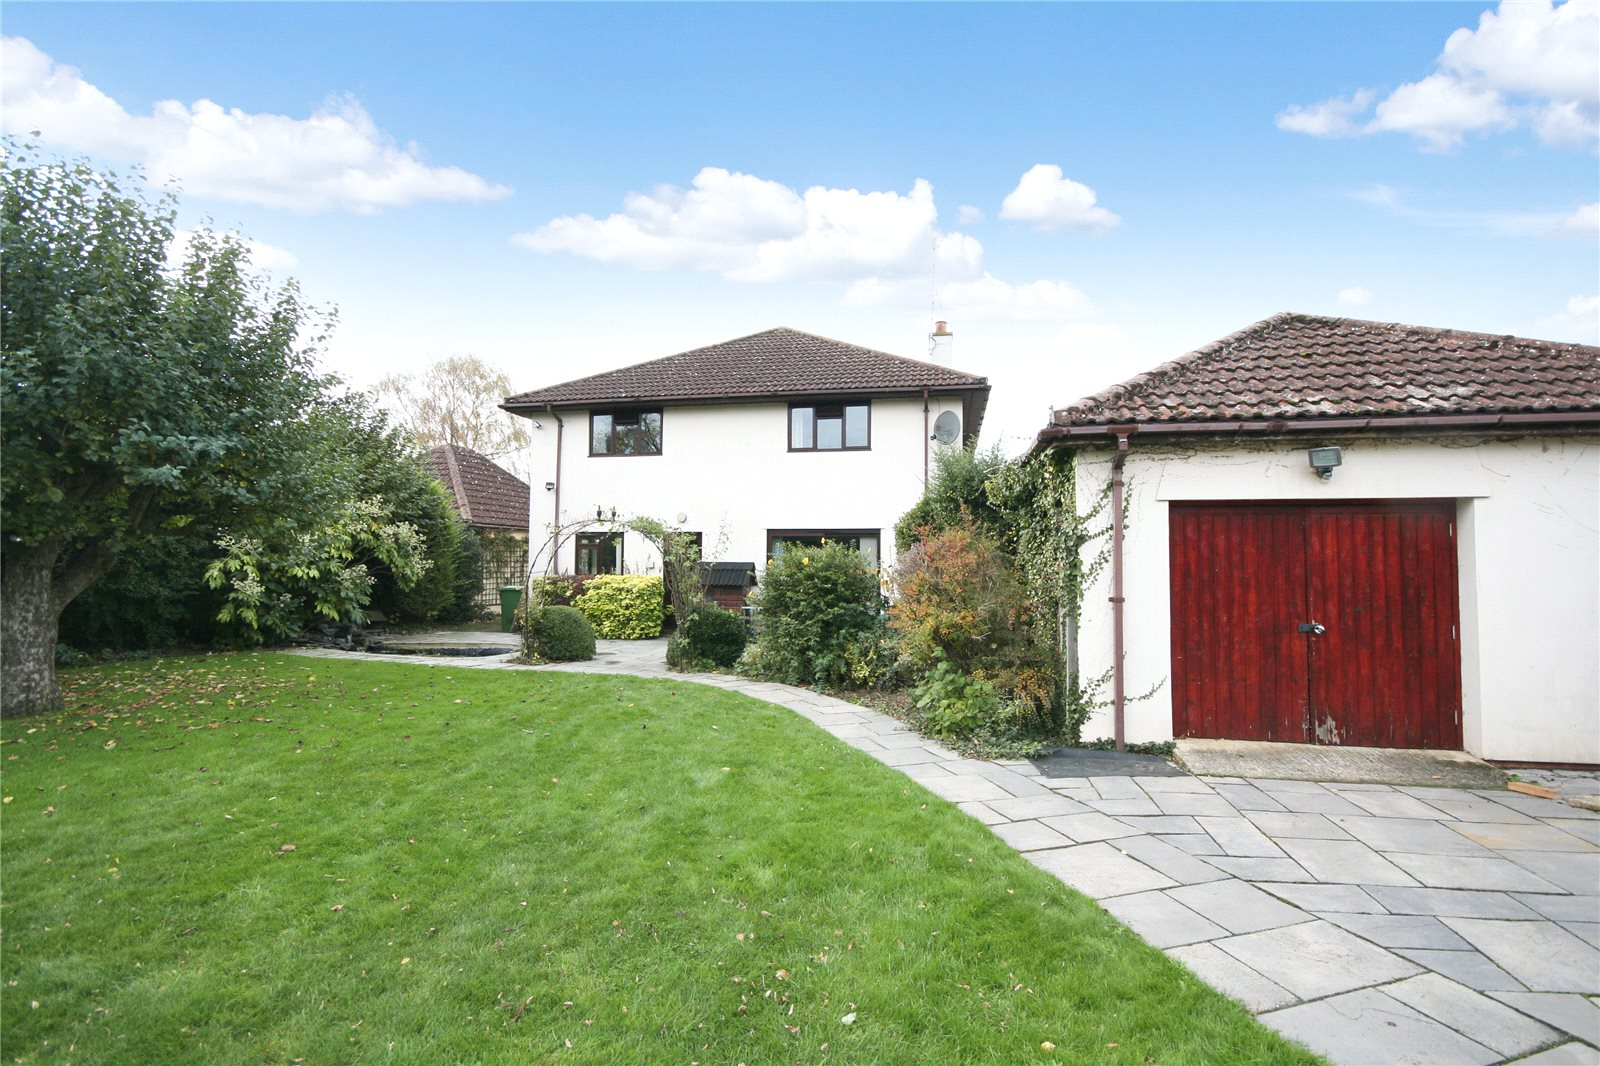 4 Bedrooms Detached House for sale in Homecroft Drive Uckington Cheltenham GL51